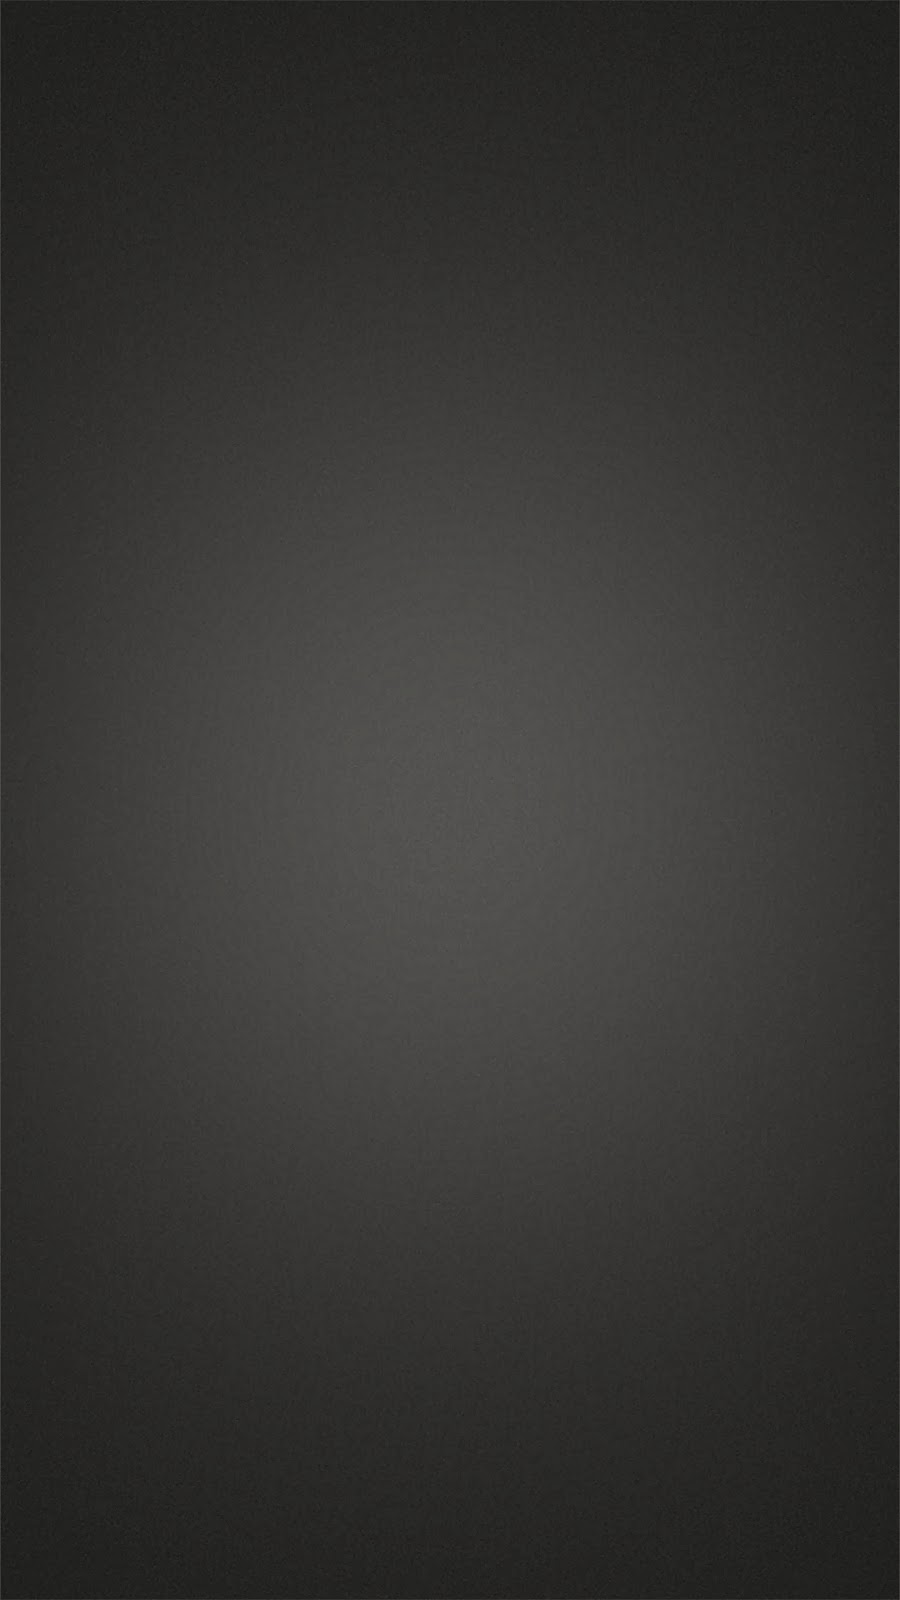 black wallpaper android - photo #7